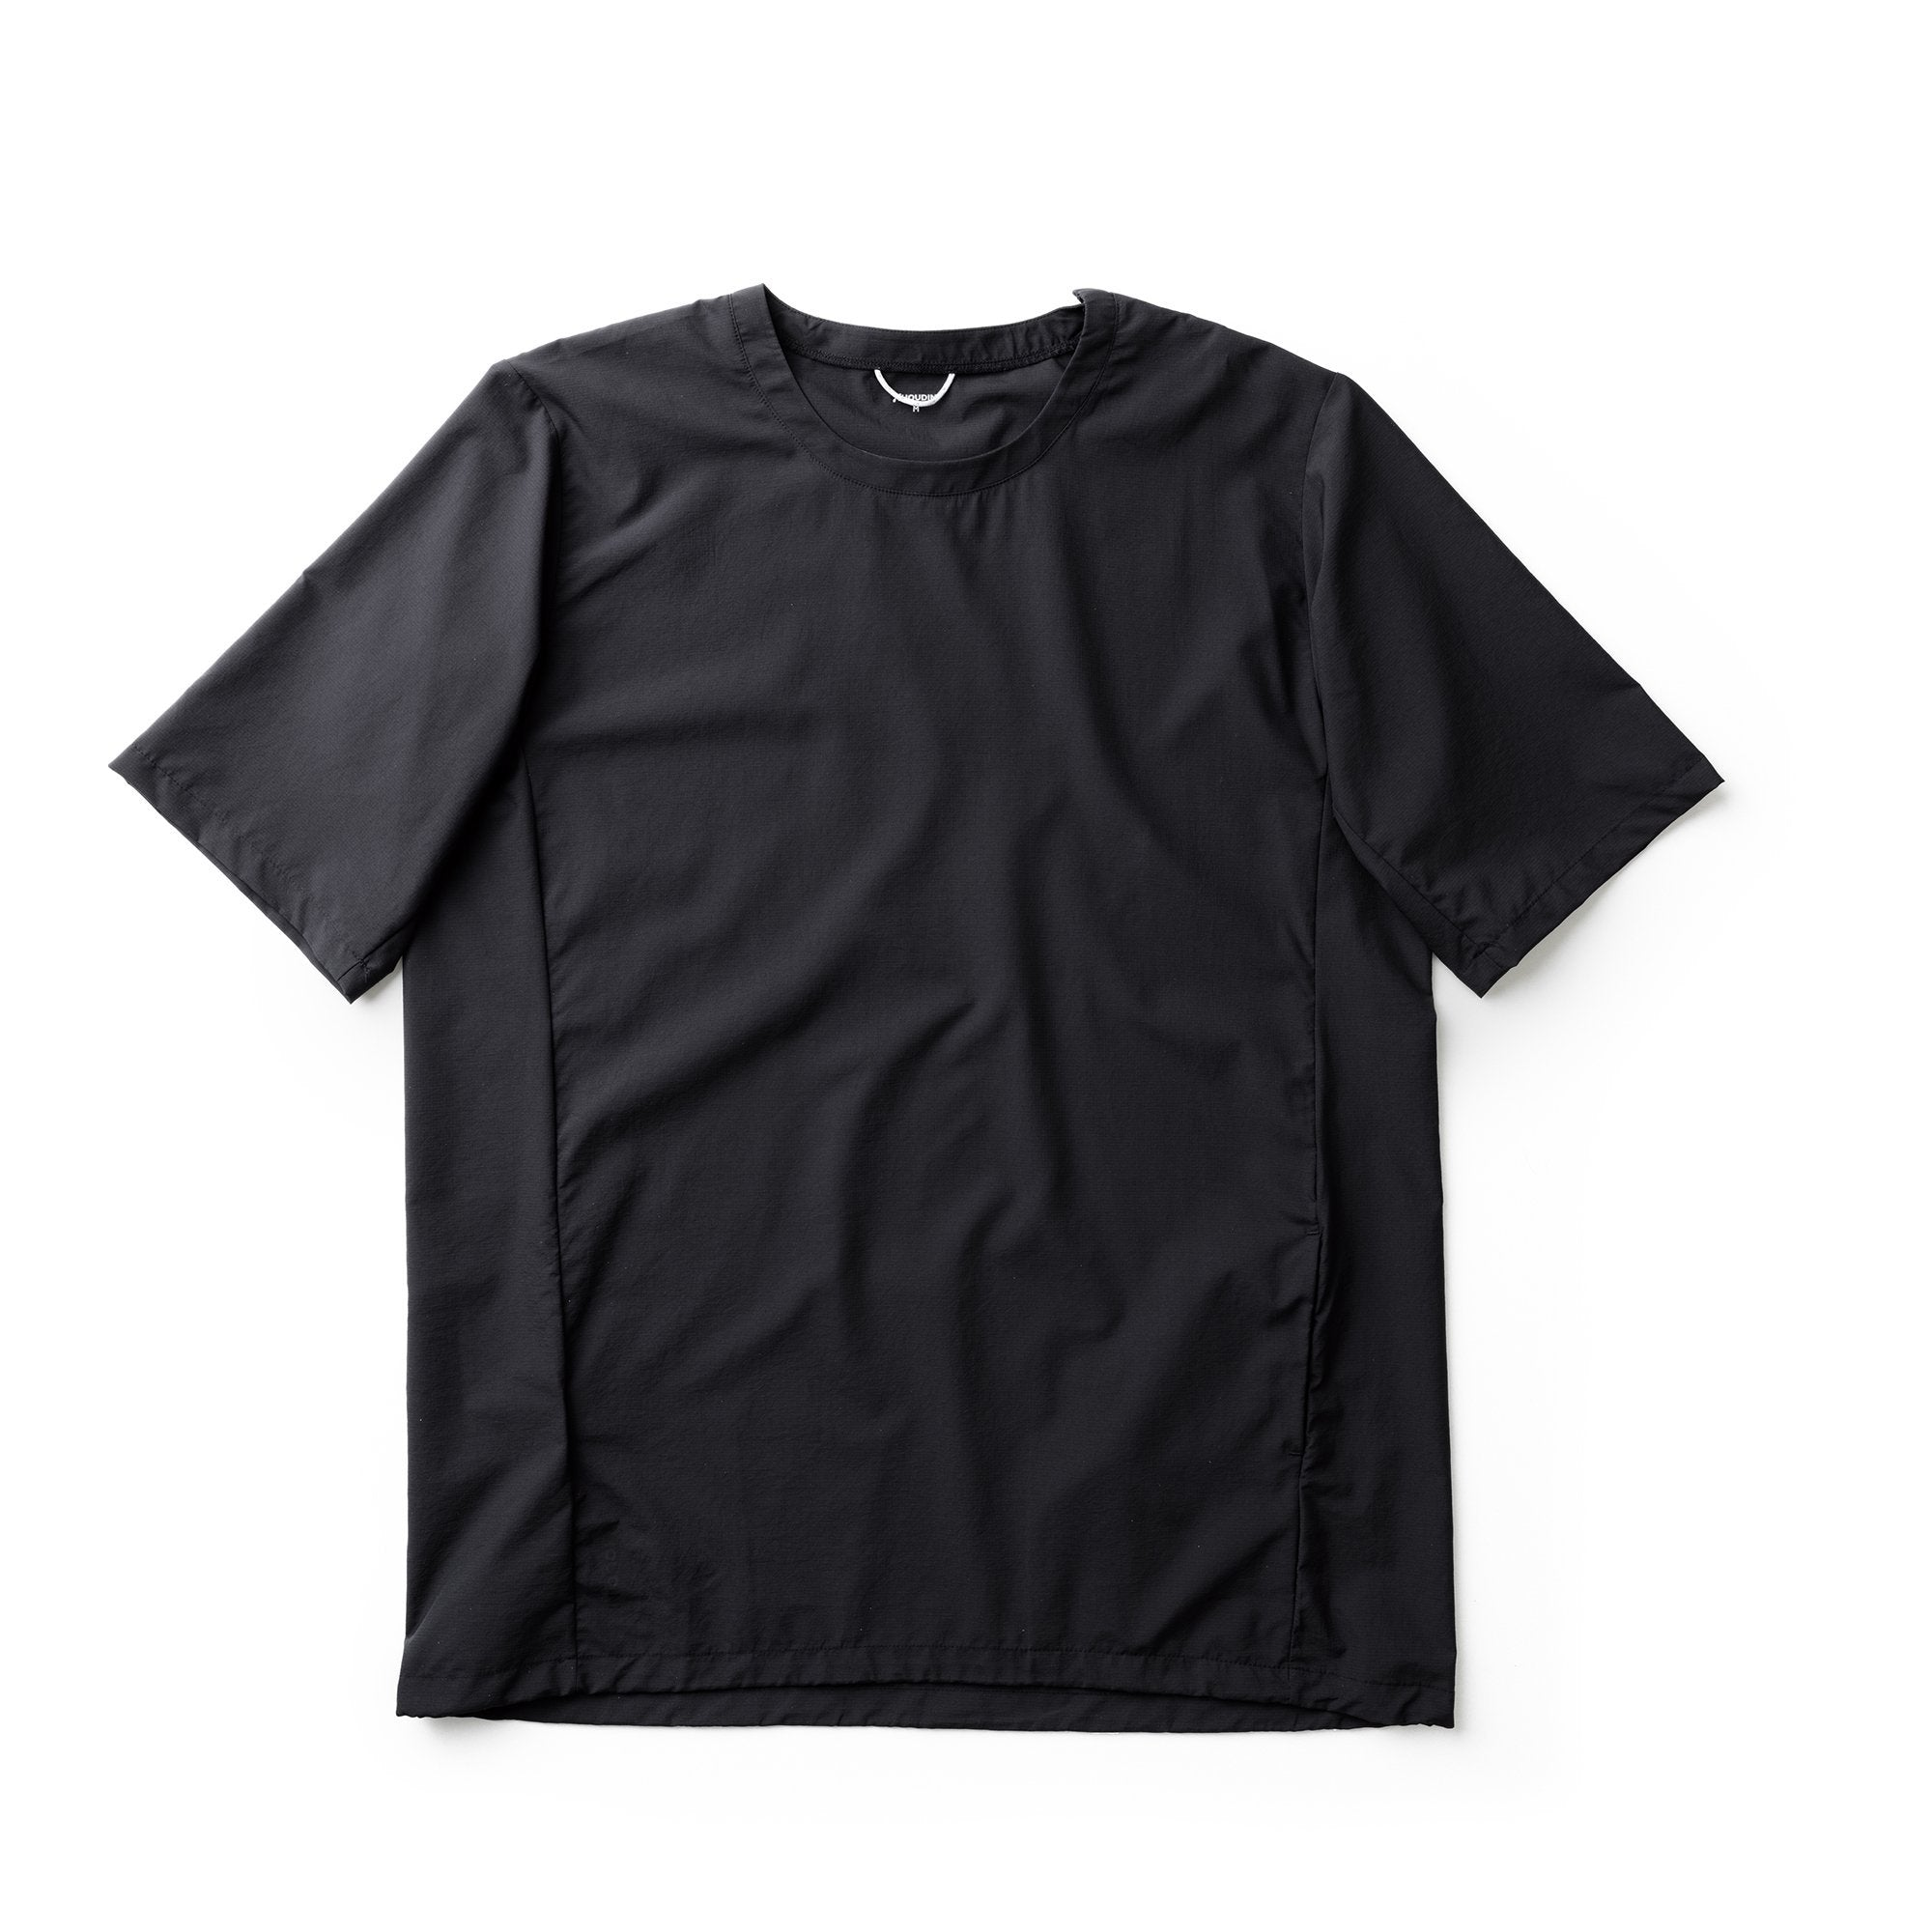 Weather Tee - True Black - Unisex - Vindpinad